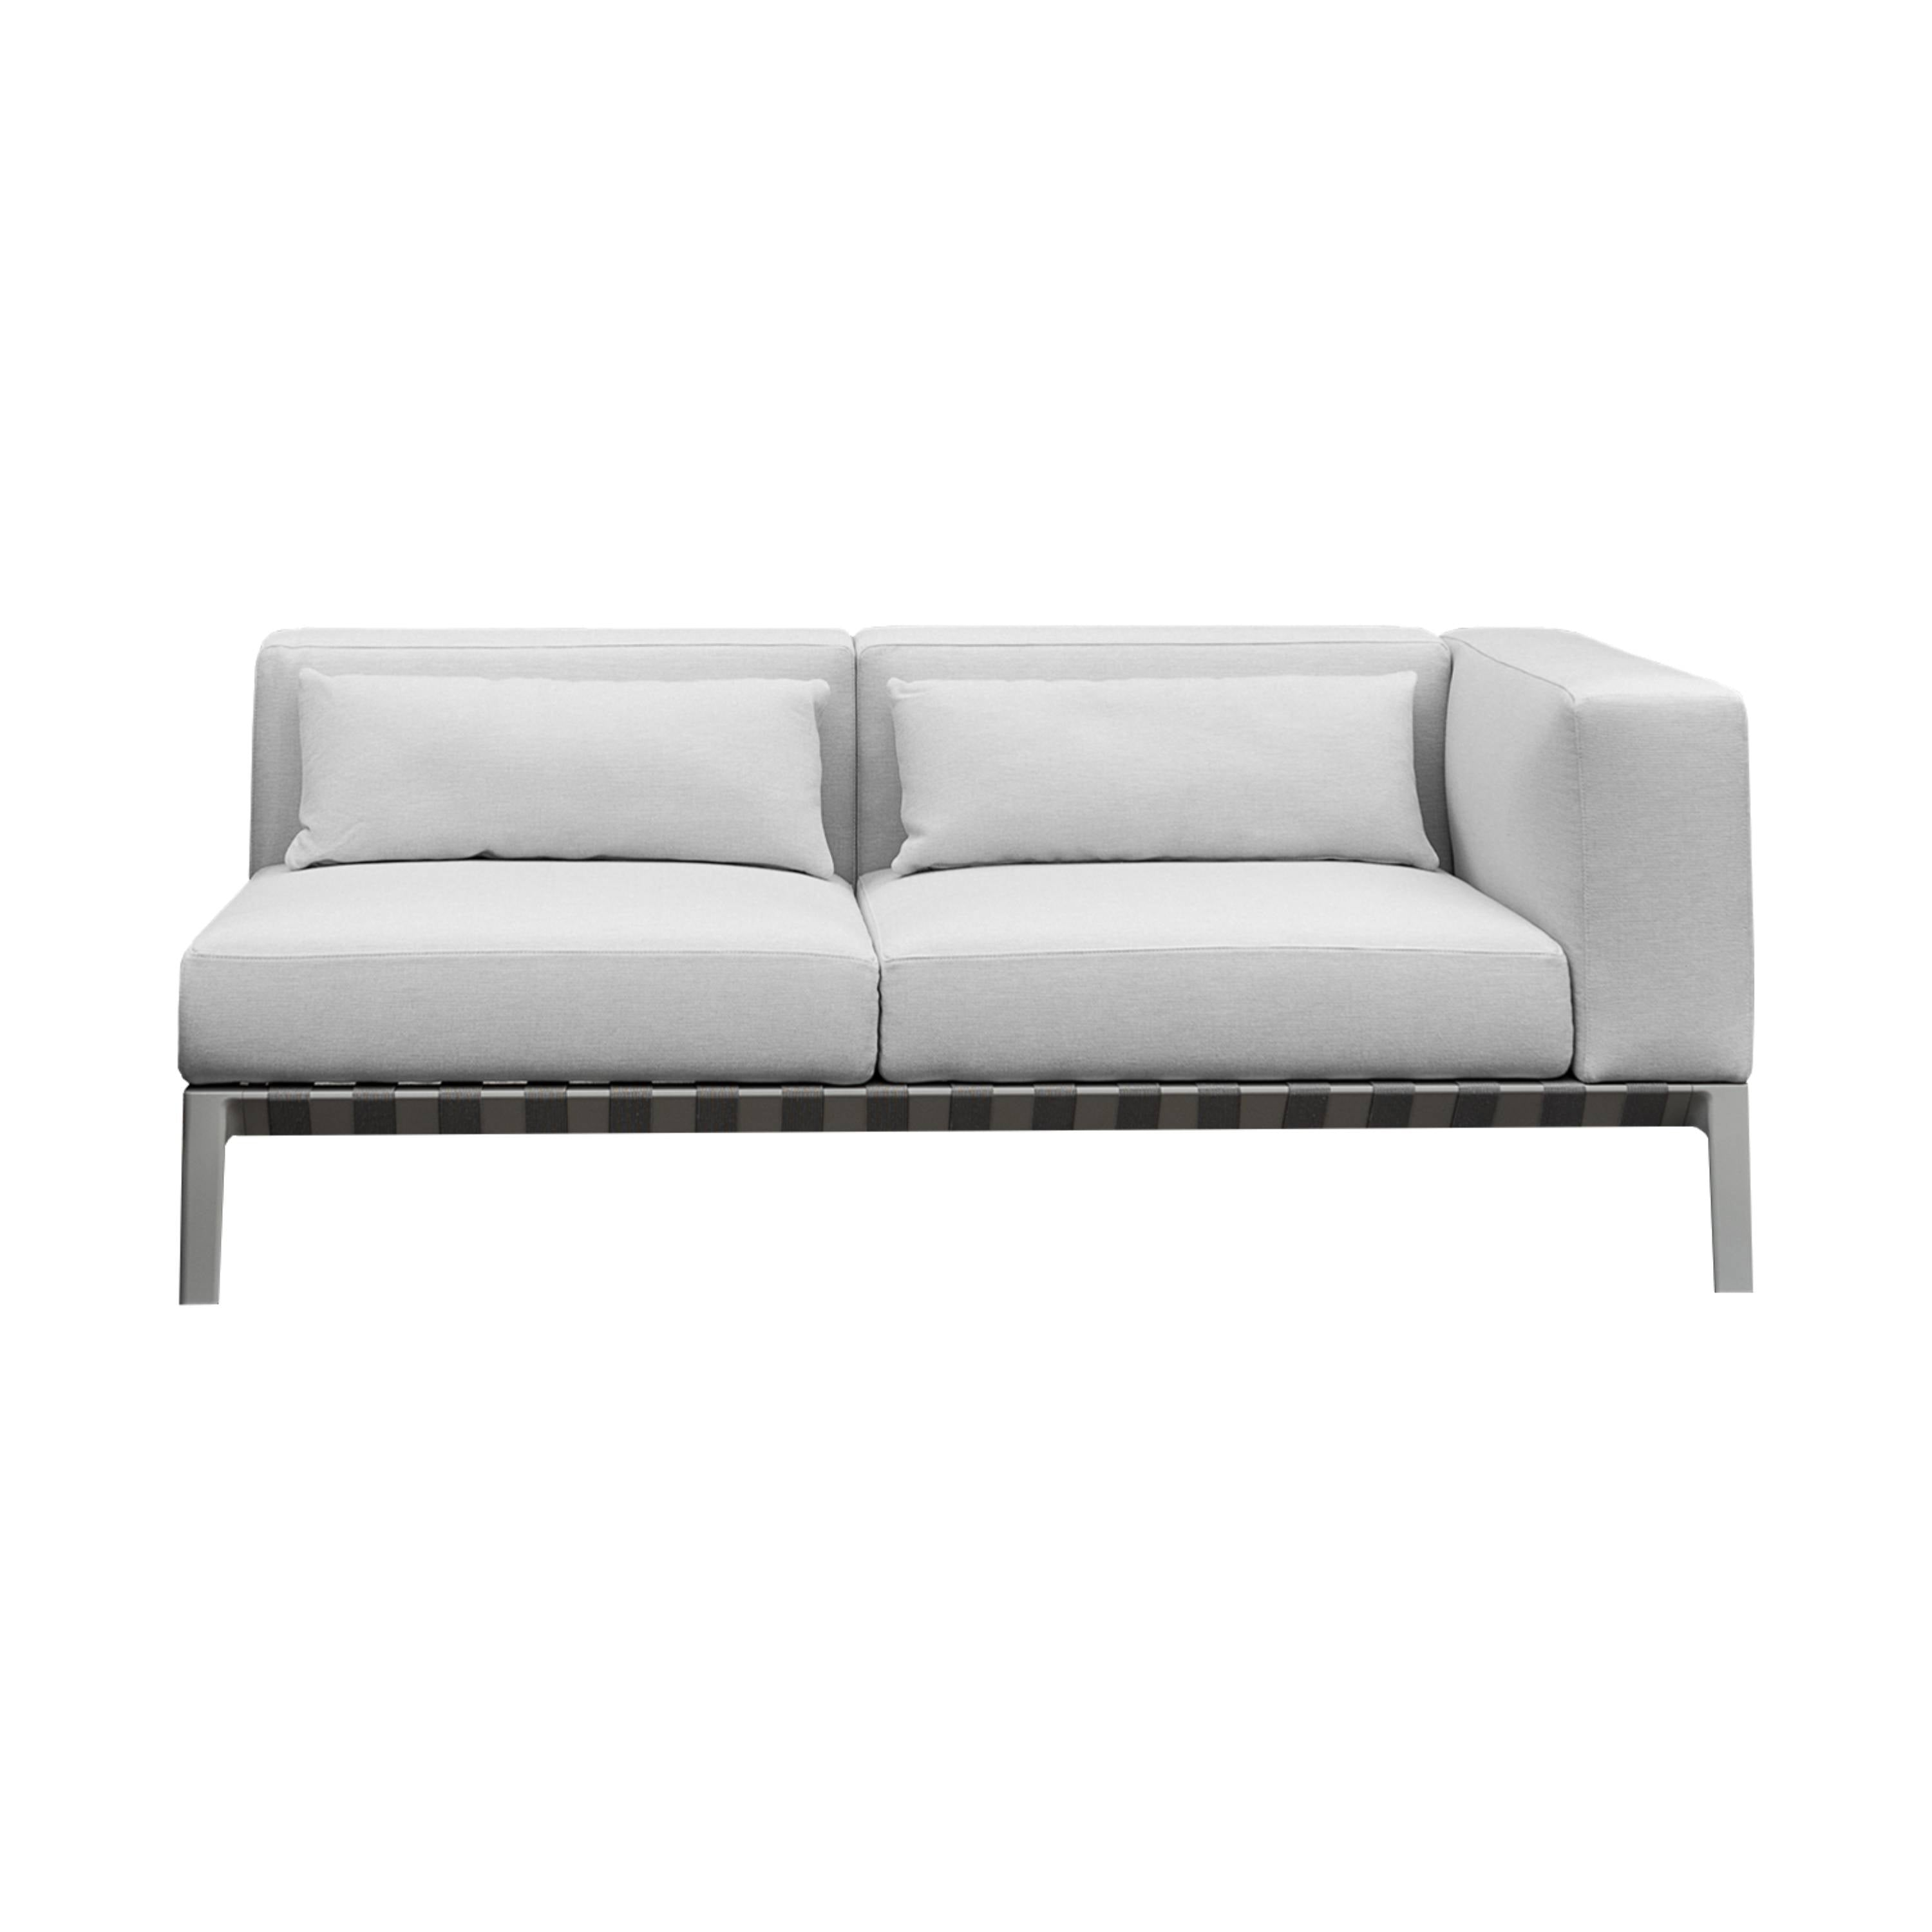 Outdoor Able Sofa with Right Arm